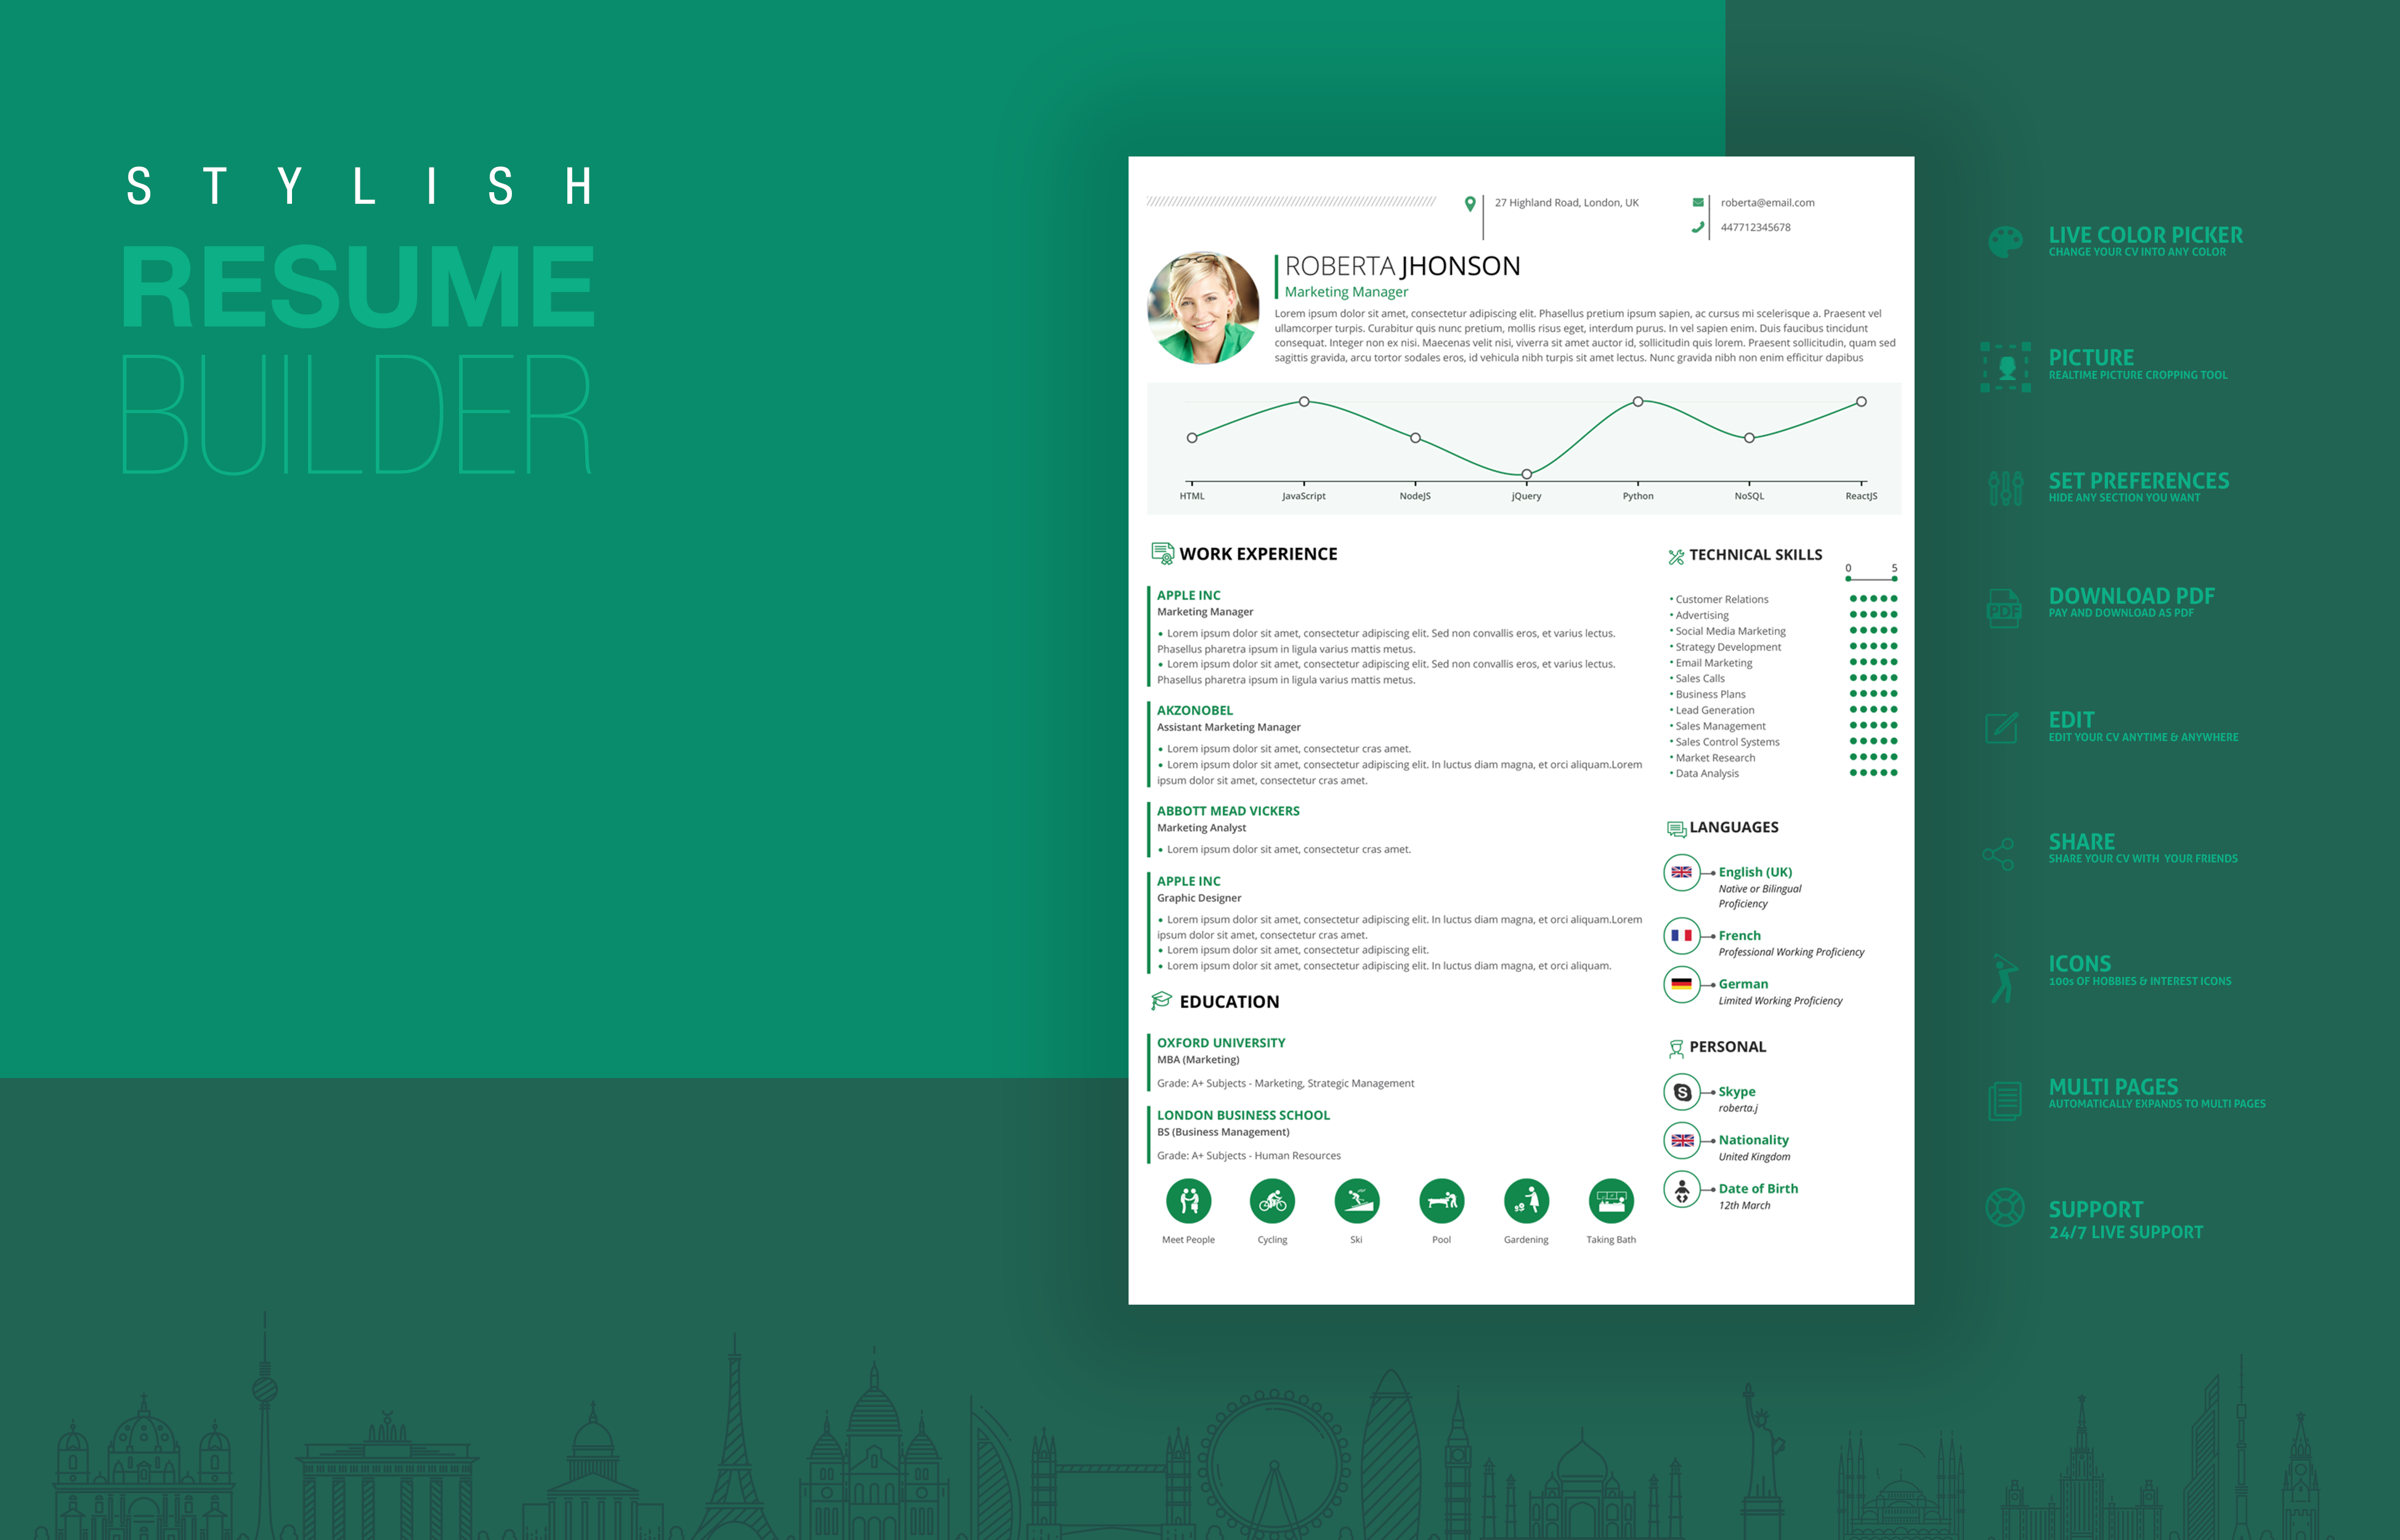 Stylish Resume Builder is a general purpose resume builder